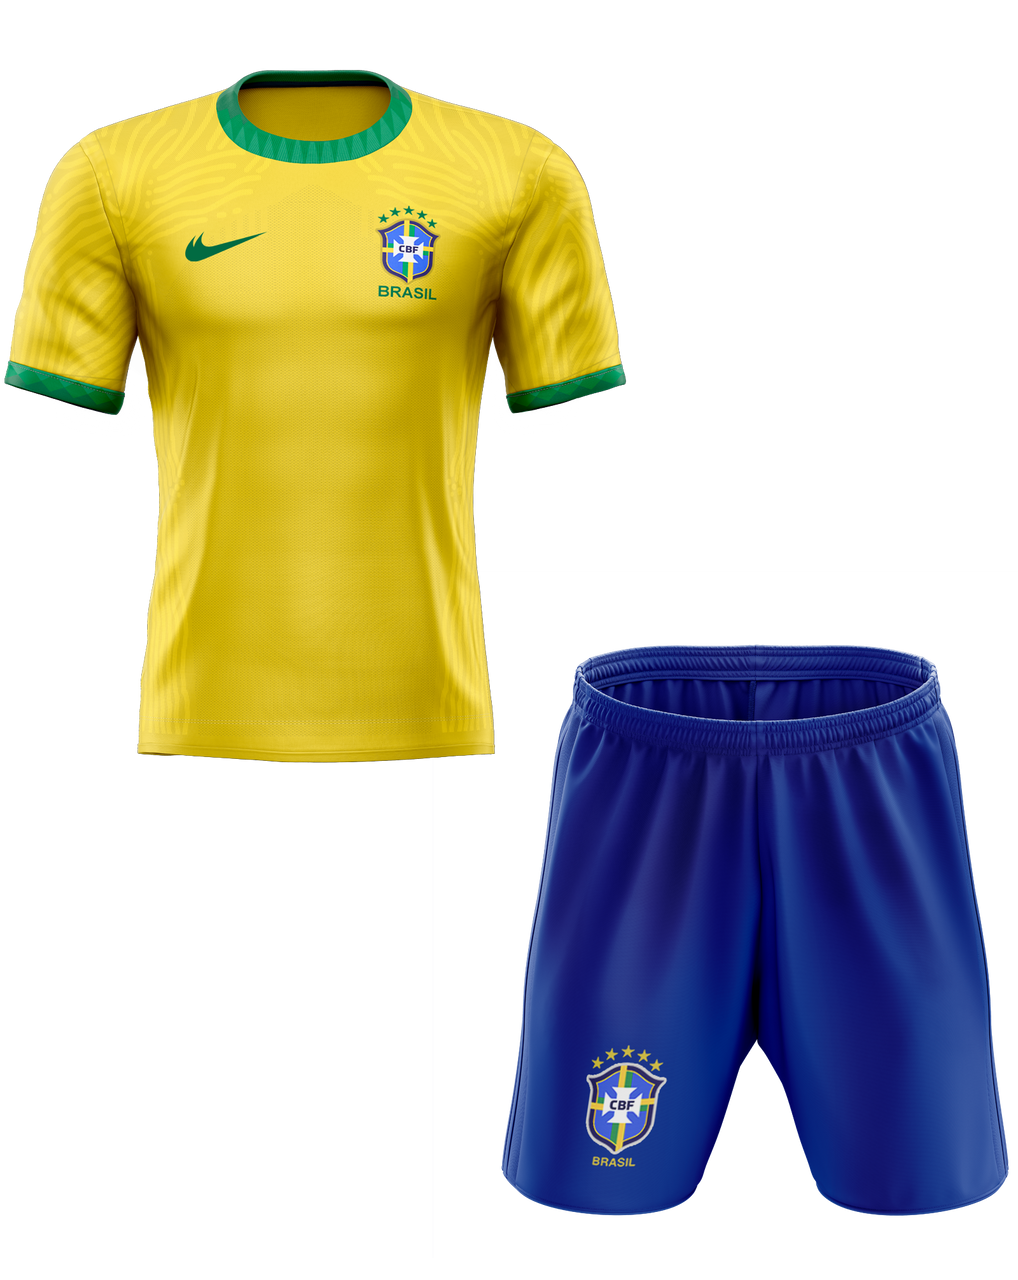 2020 Brazil Home Kids Kit With Free Name And Number Coolkitdirect